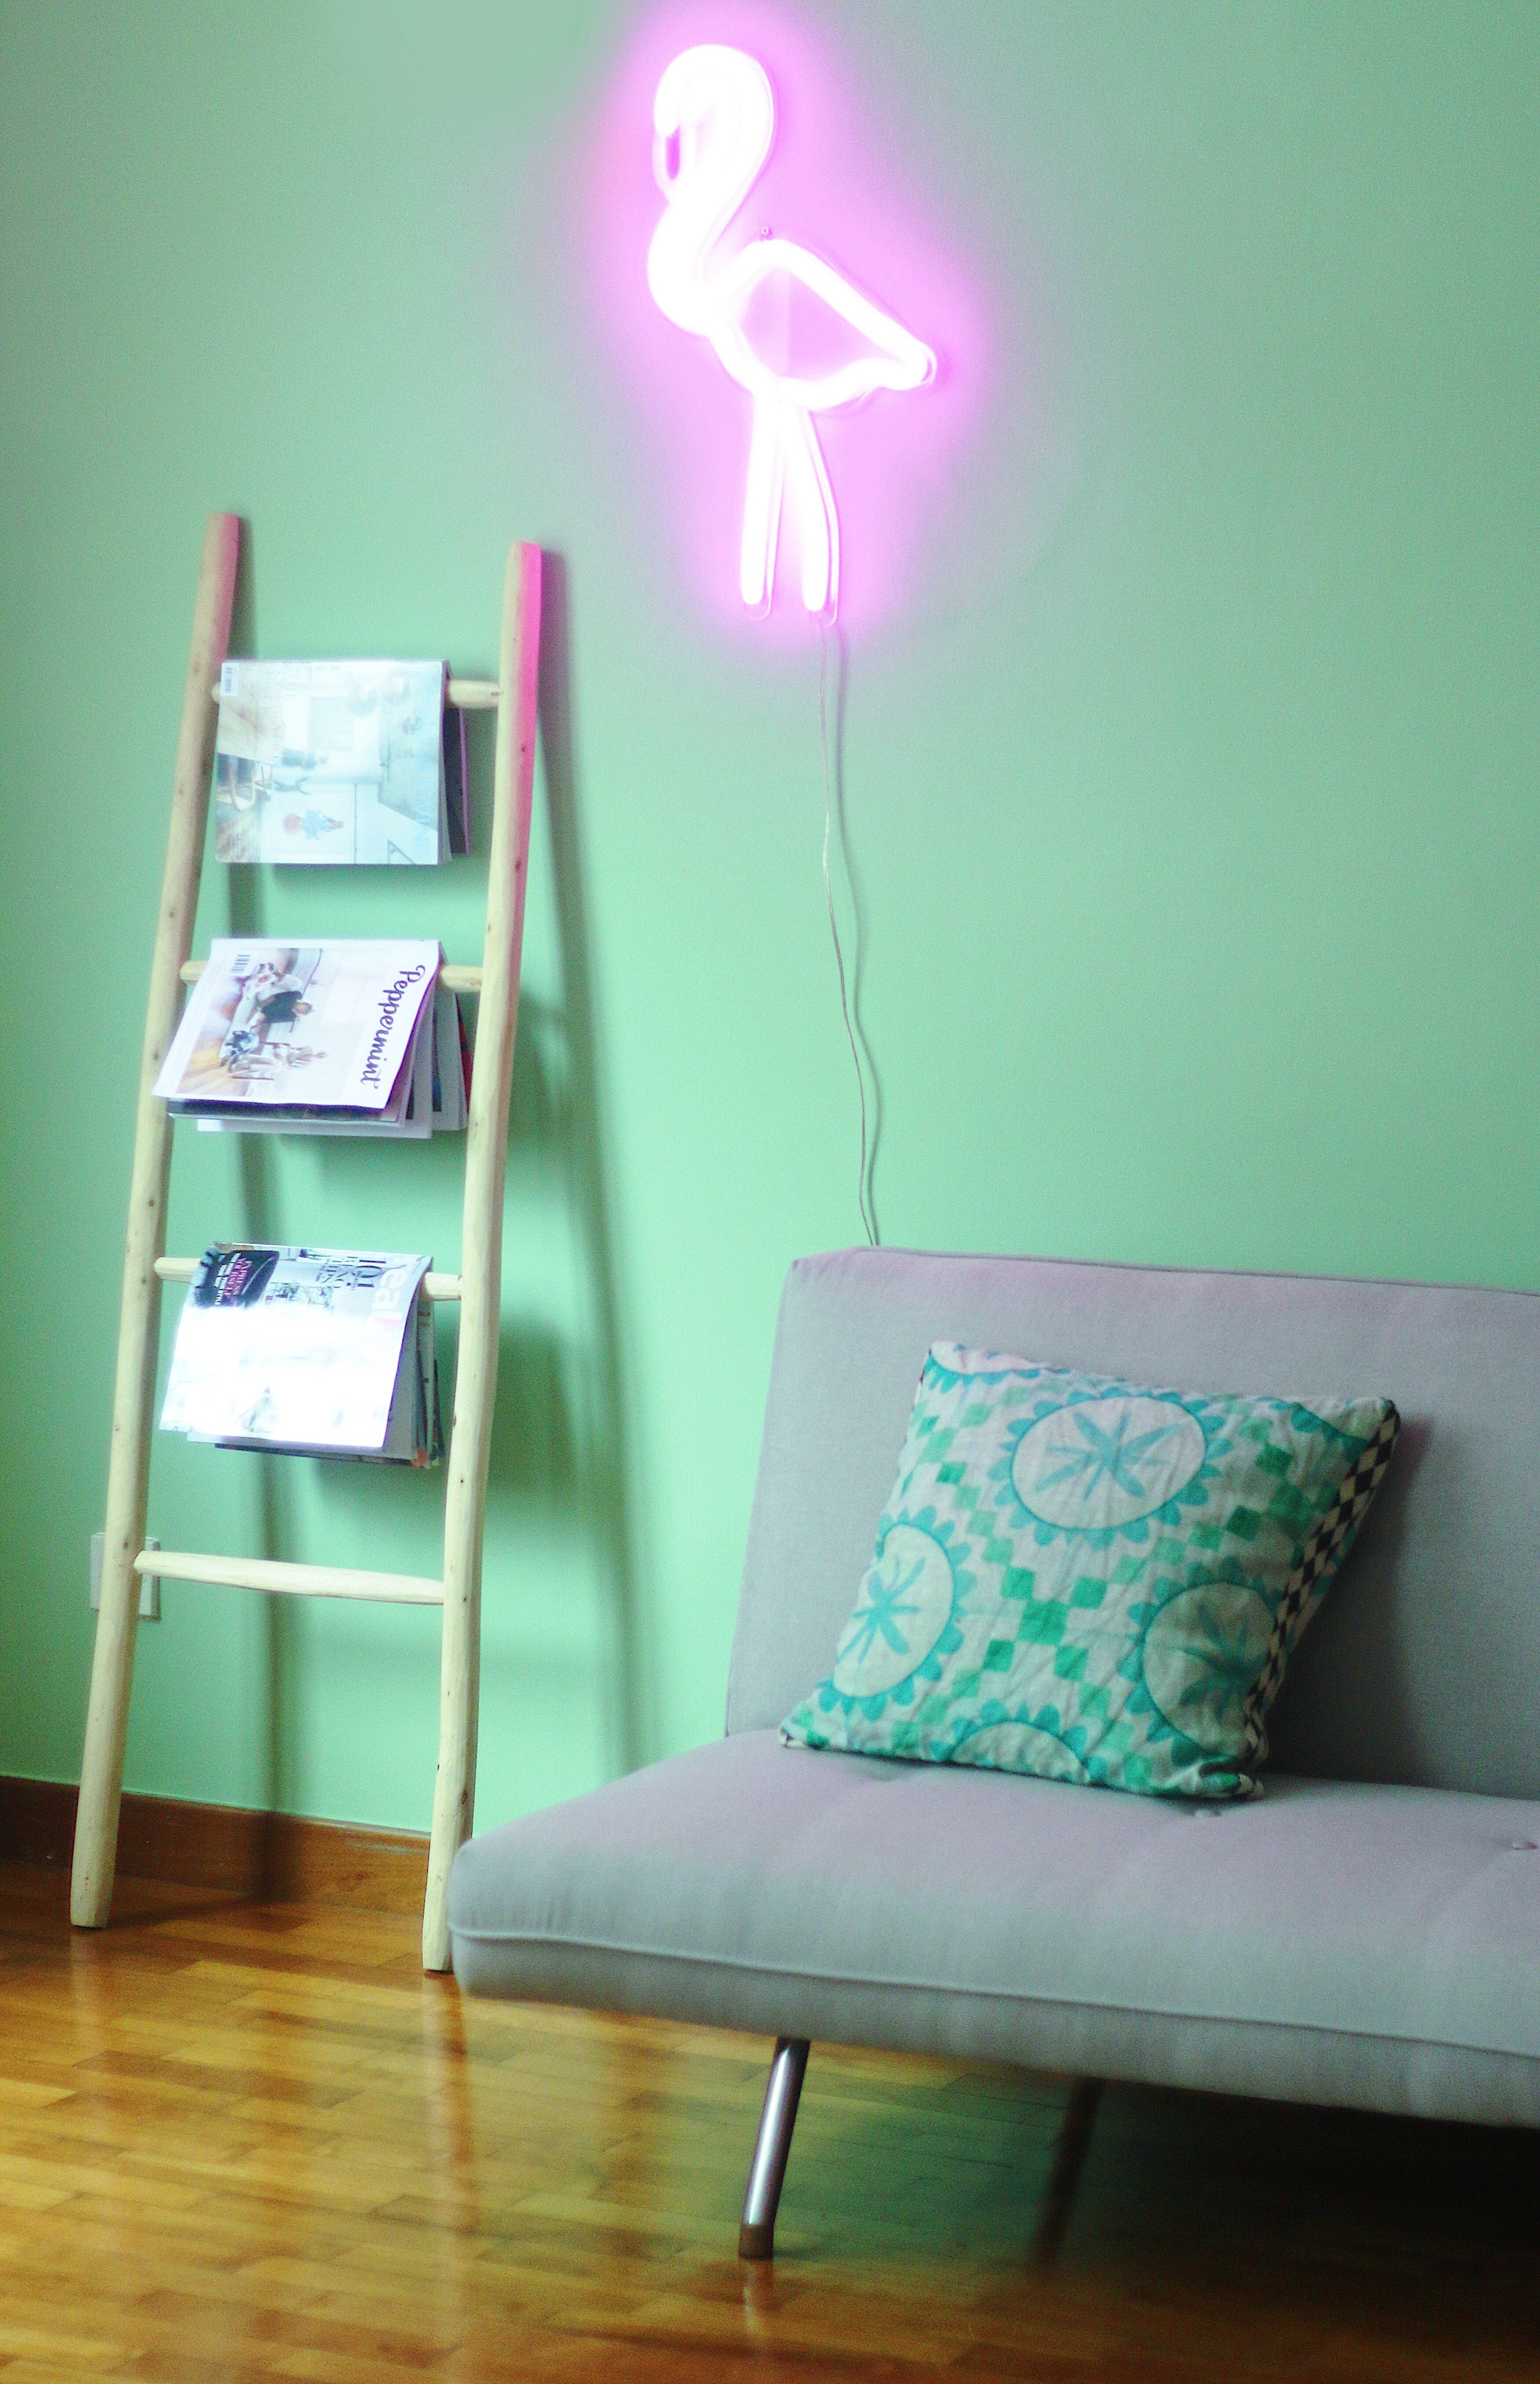 Cool Neon Sign Ideas at Home with Feature Wall